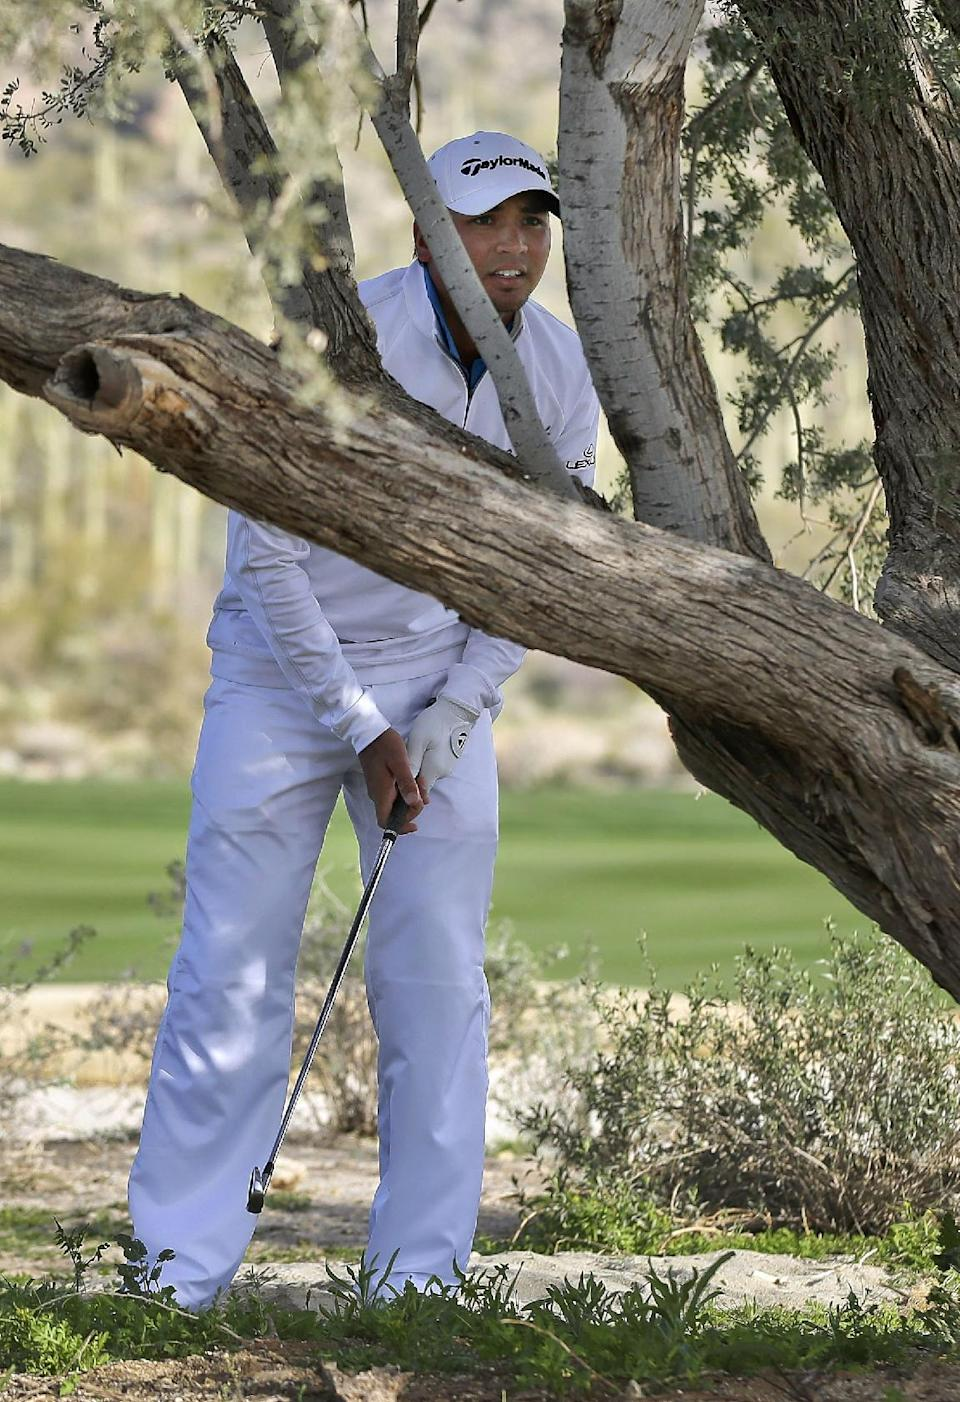 Jason Day checks his line to the pin on the seventh hole before hitting from behind a tree in the semifinal round of play against Matt Kuchar during the Match Play Championship golf tournament, Sunday, Feb. 24, 2013, in Marana, Ariz. (AP Photo/Julie Jacobson)